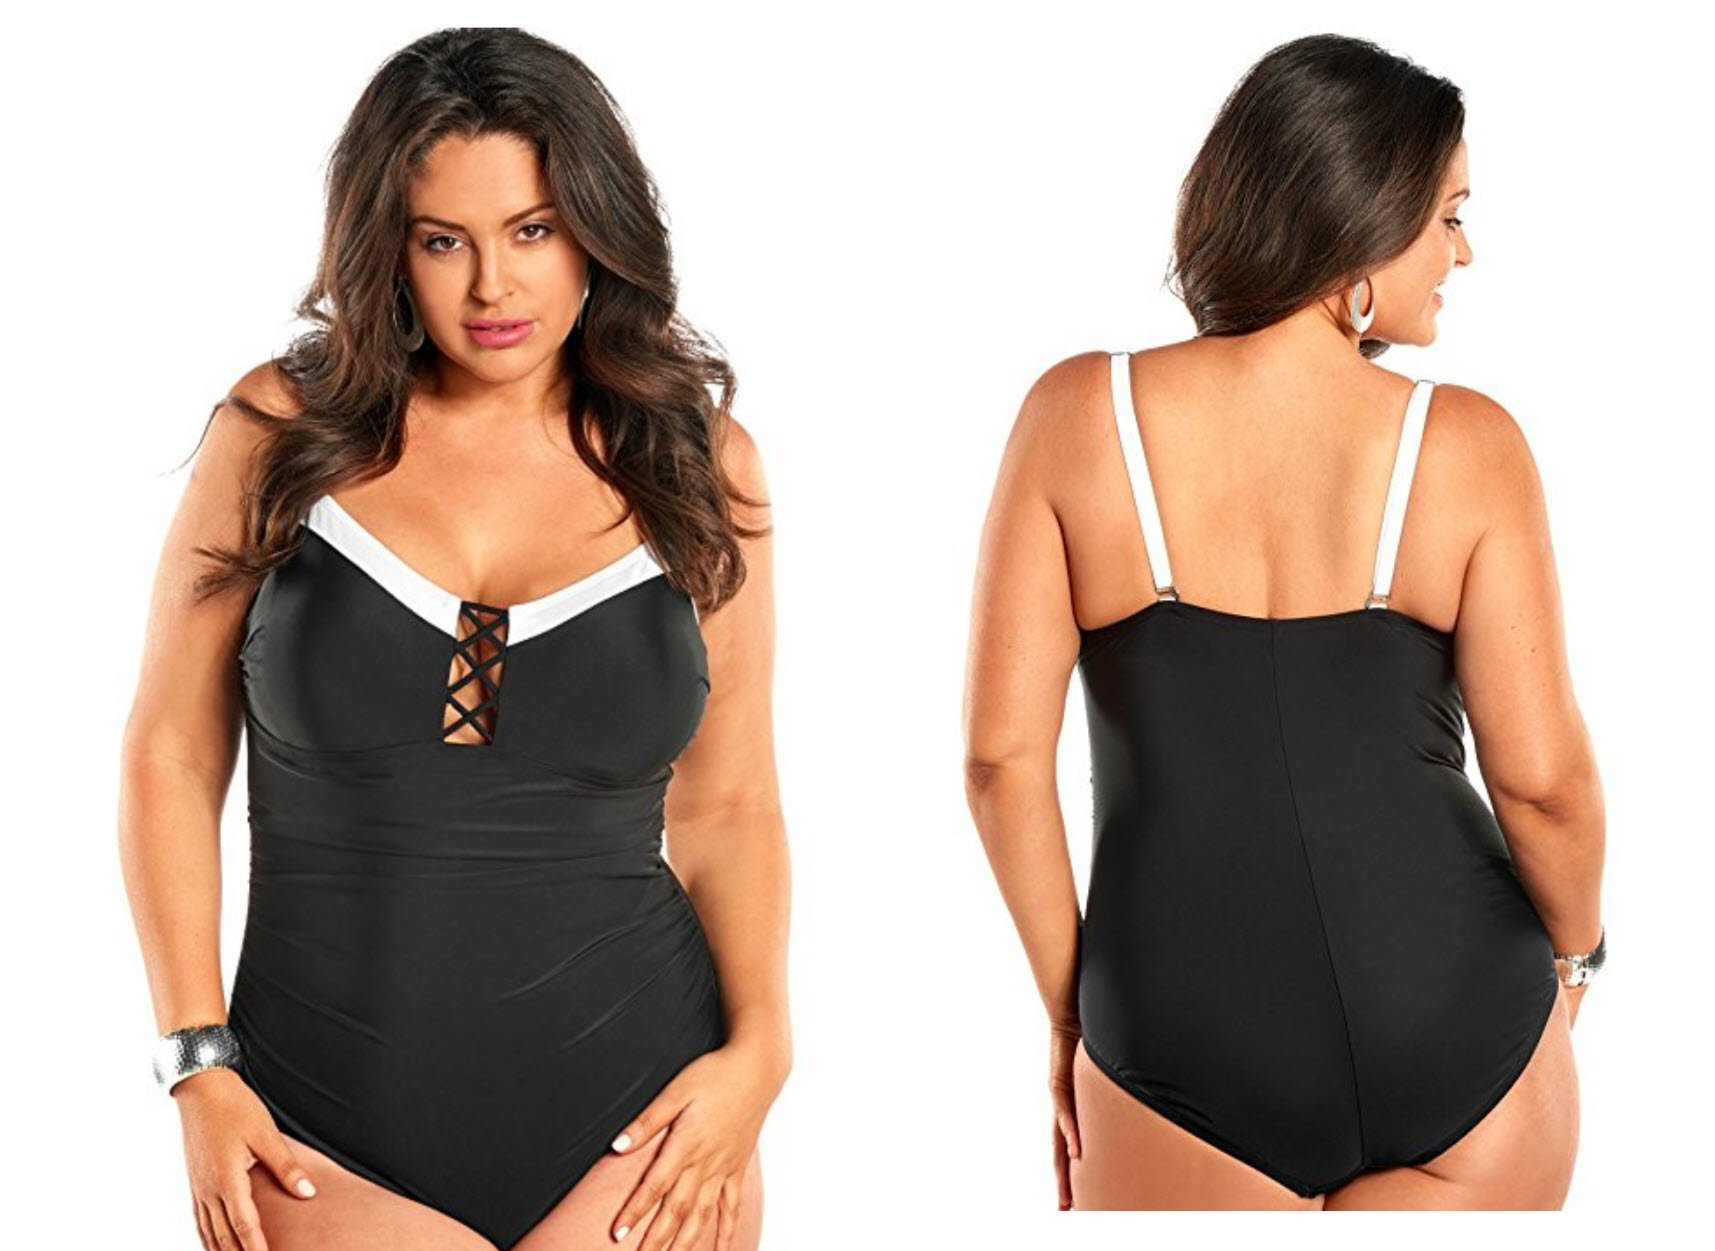 Always For Me Women's Plus Size Mykonos One Piece Swimsuit